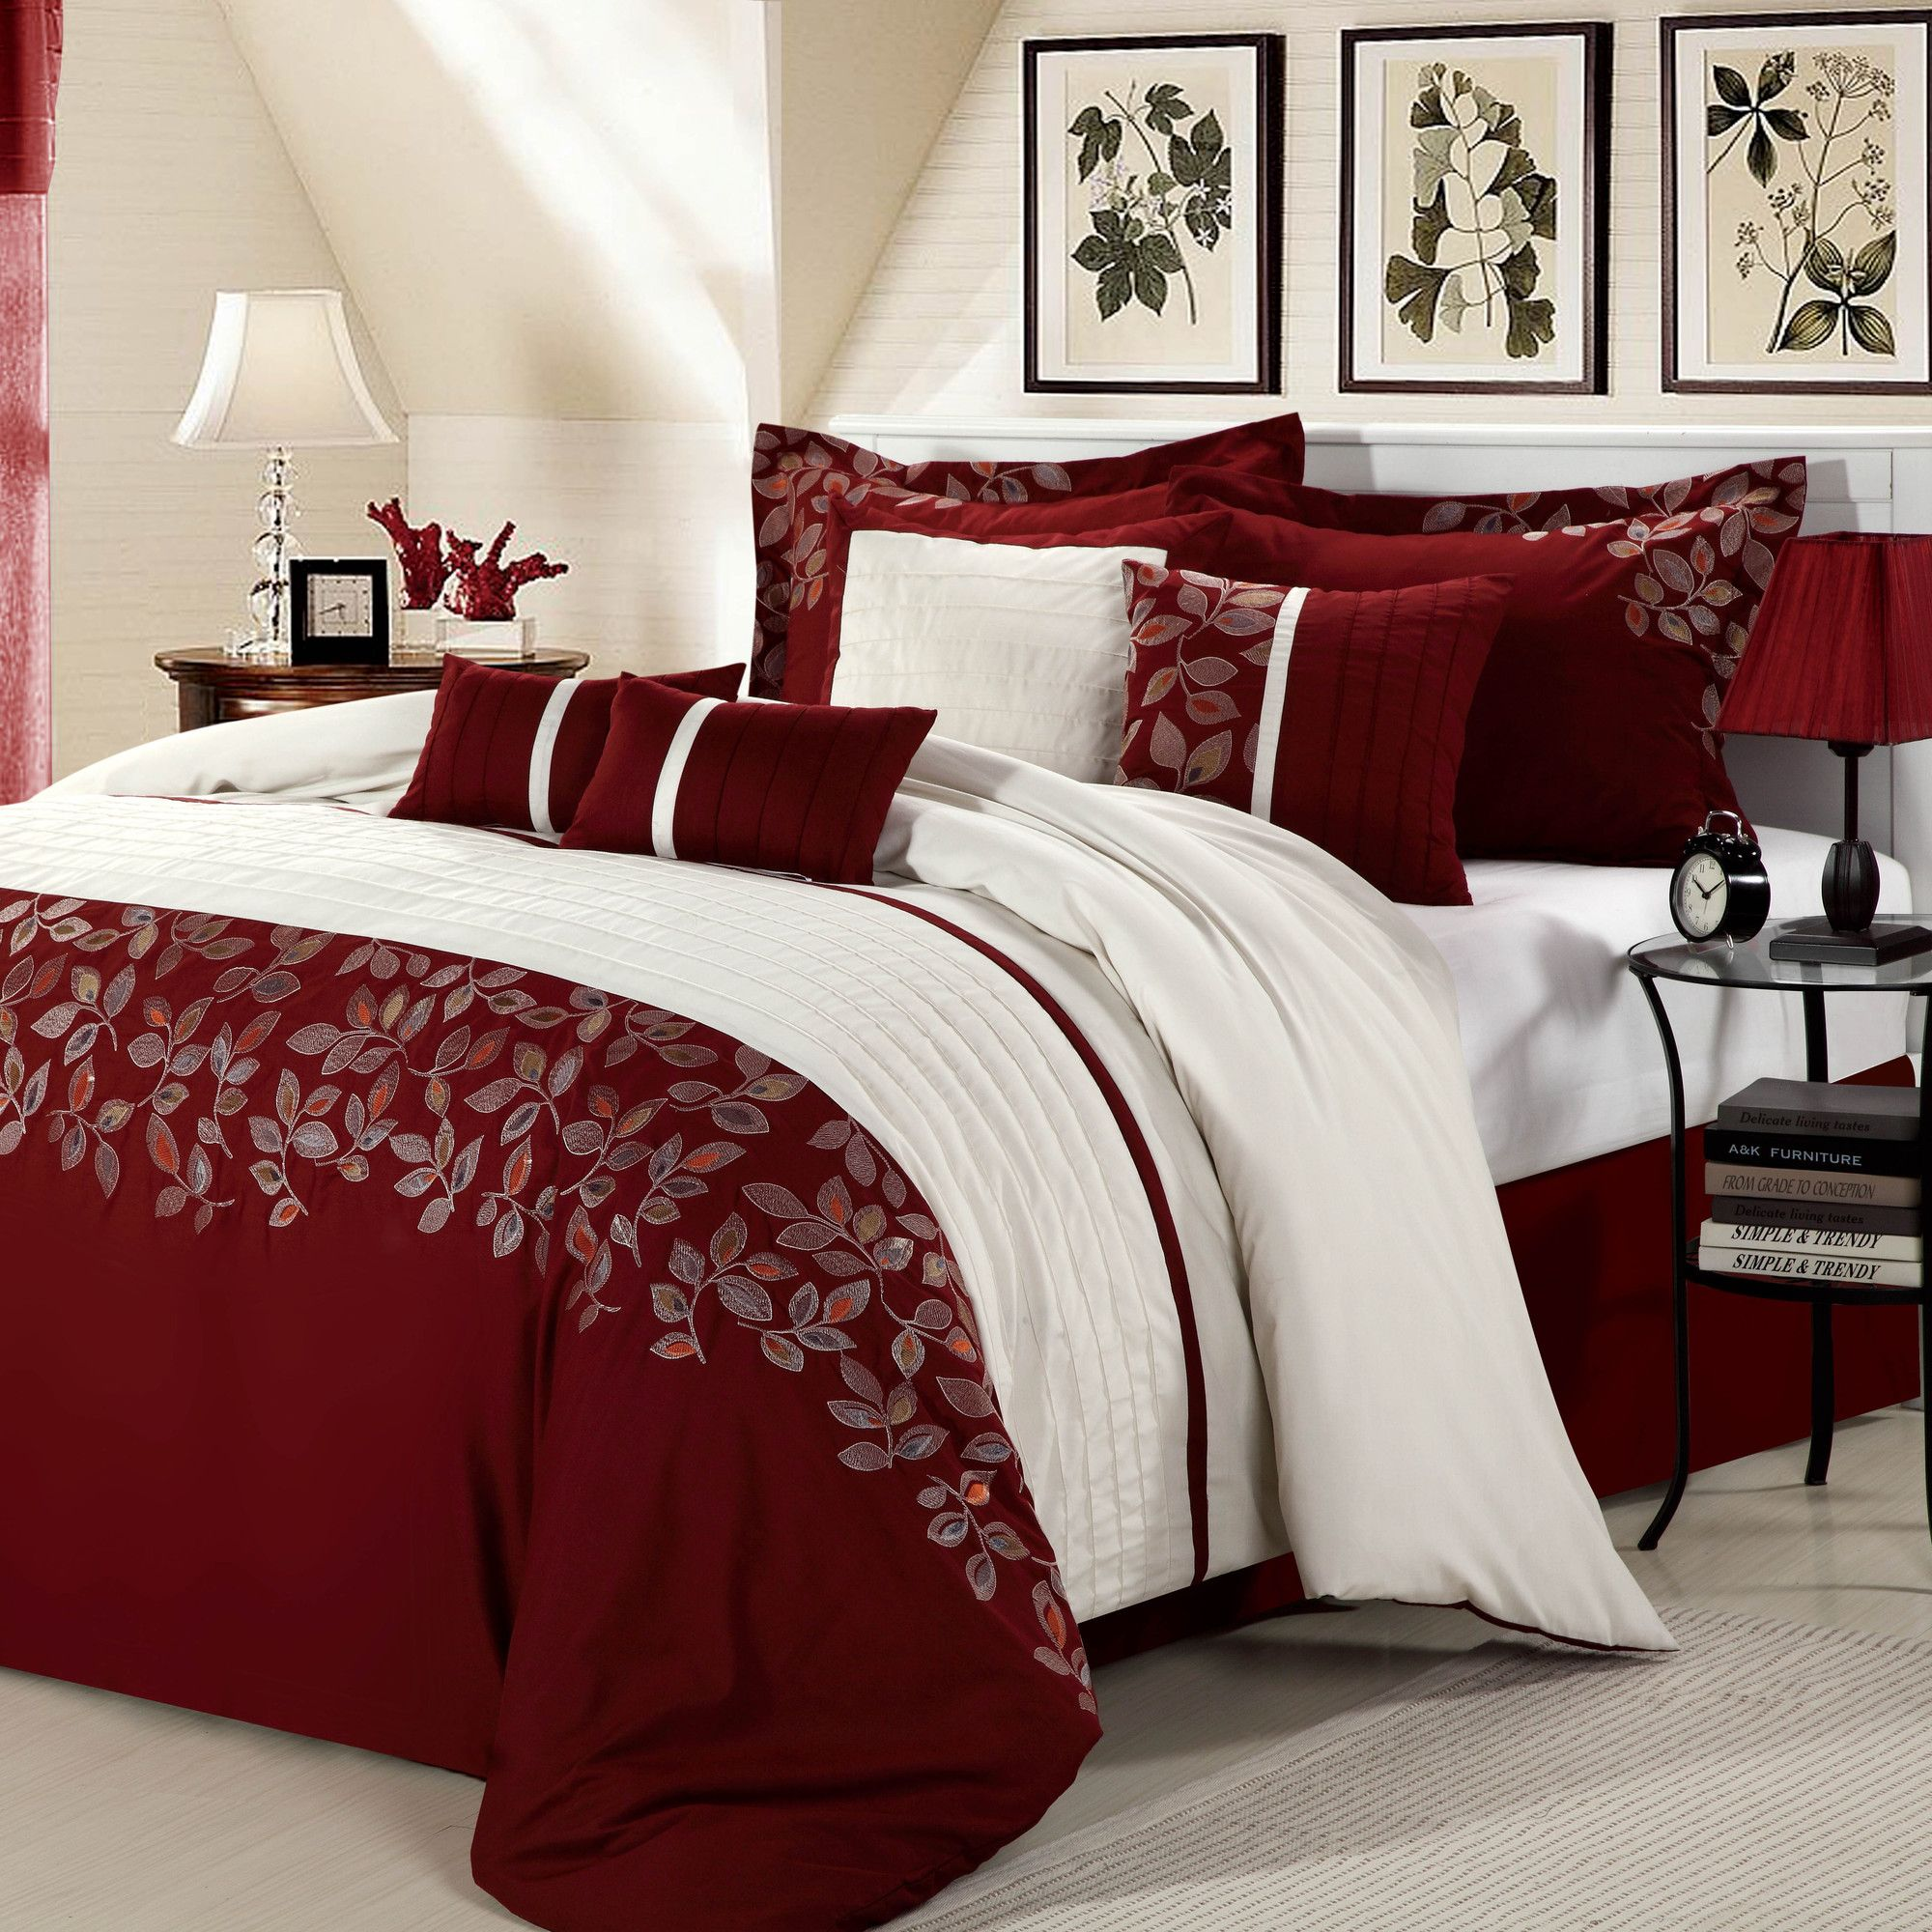 Chic Home Montana 8 Piece Comforter Set U0026 Reviews | Wayfair